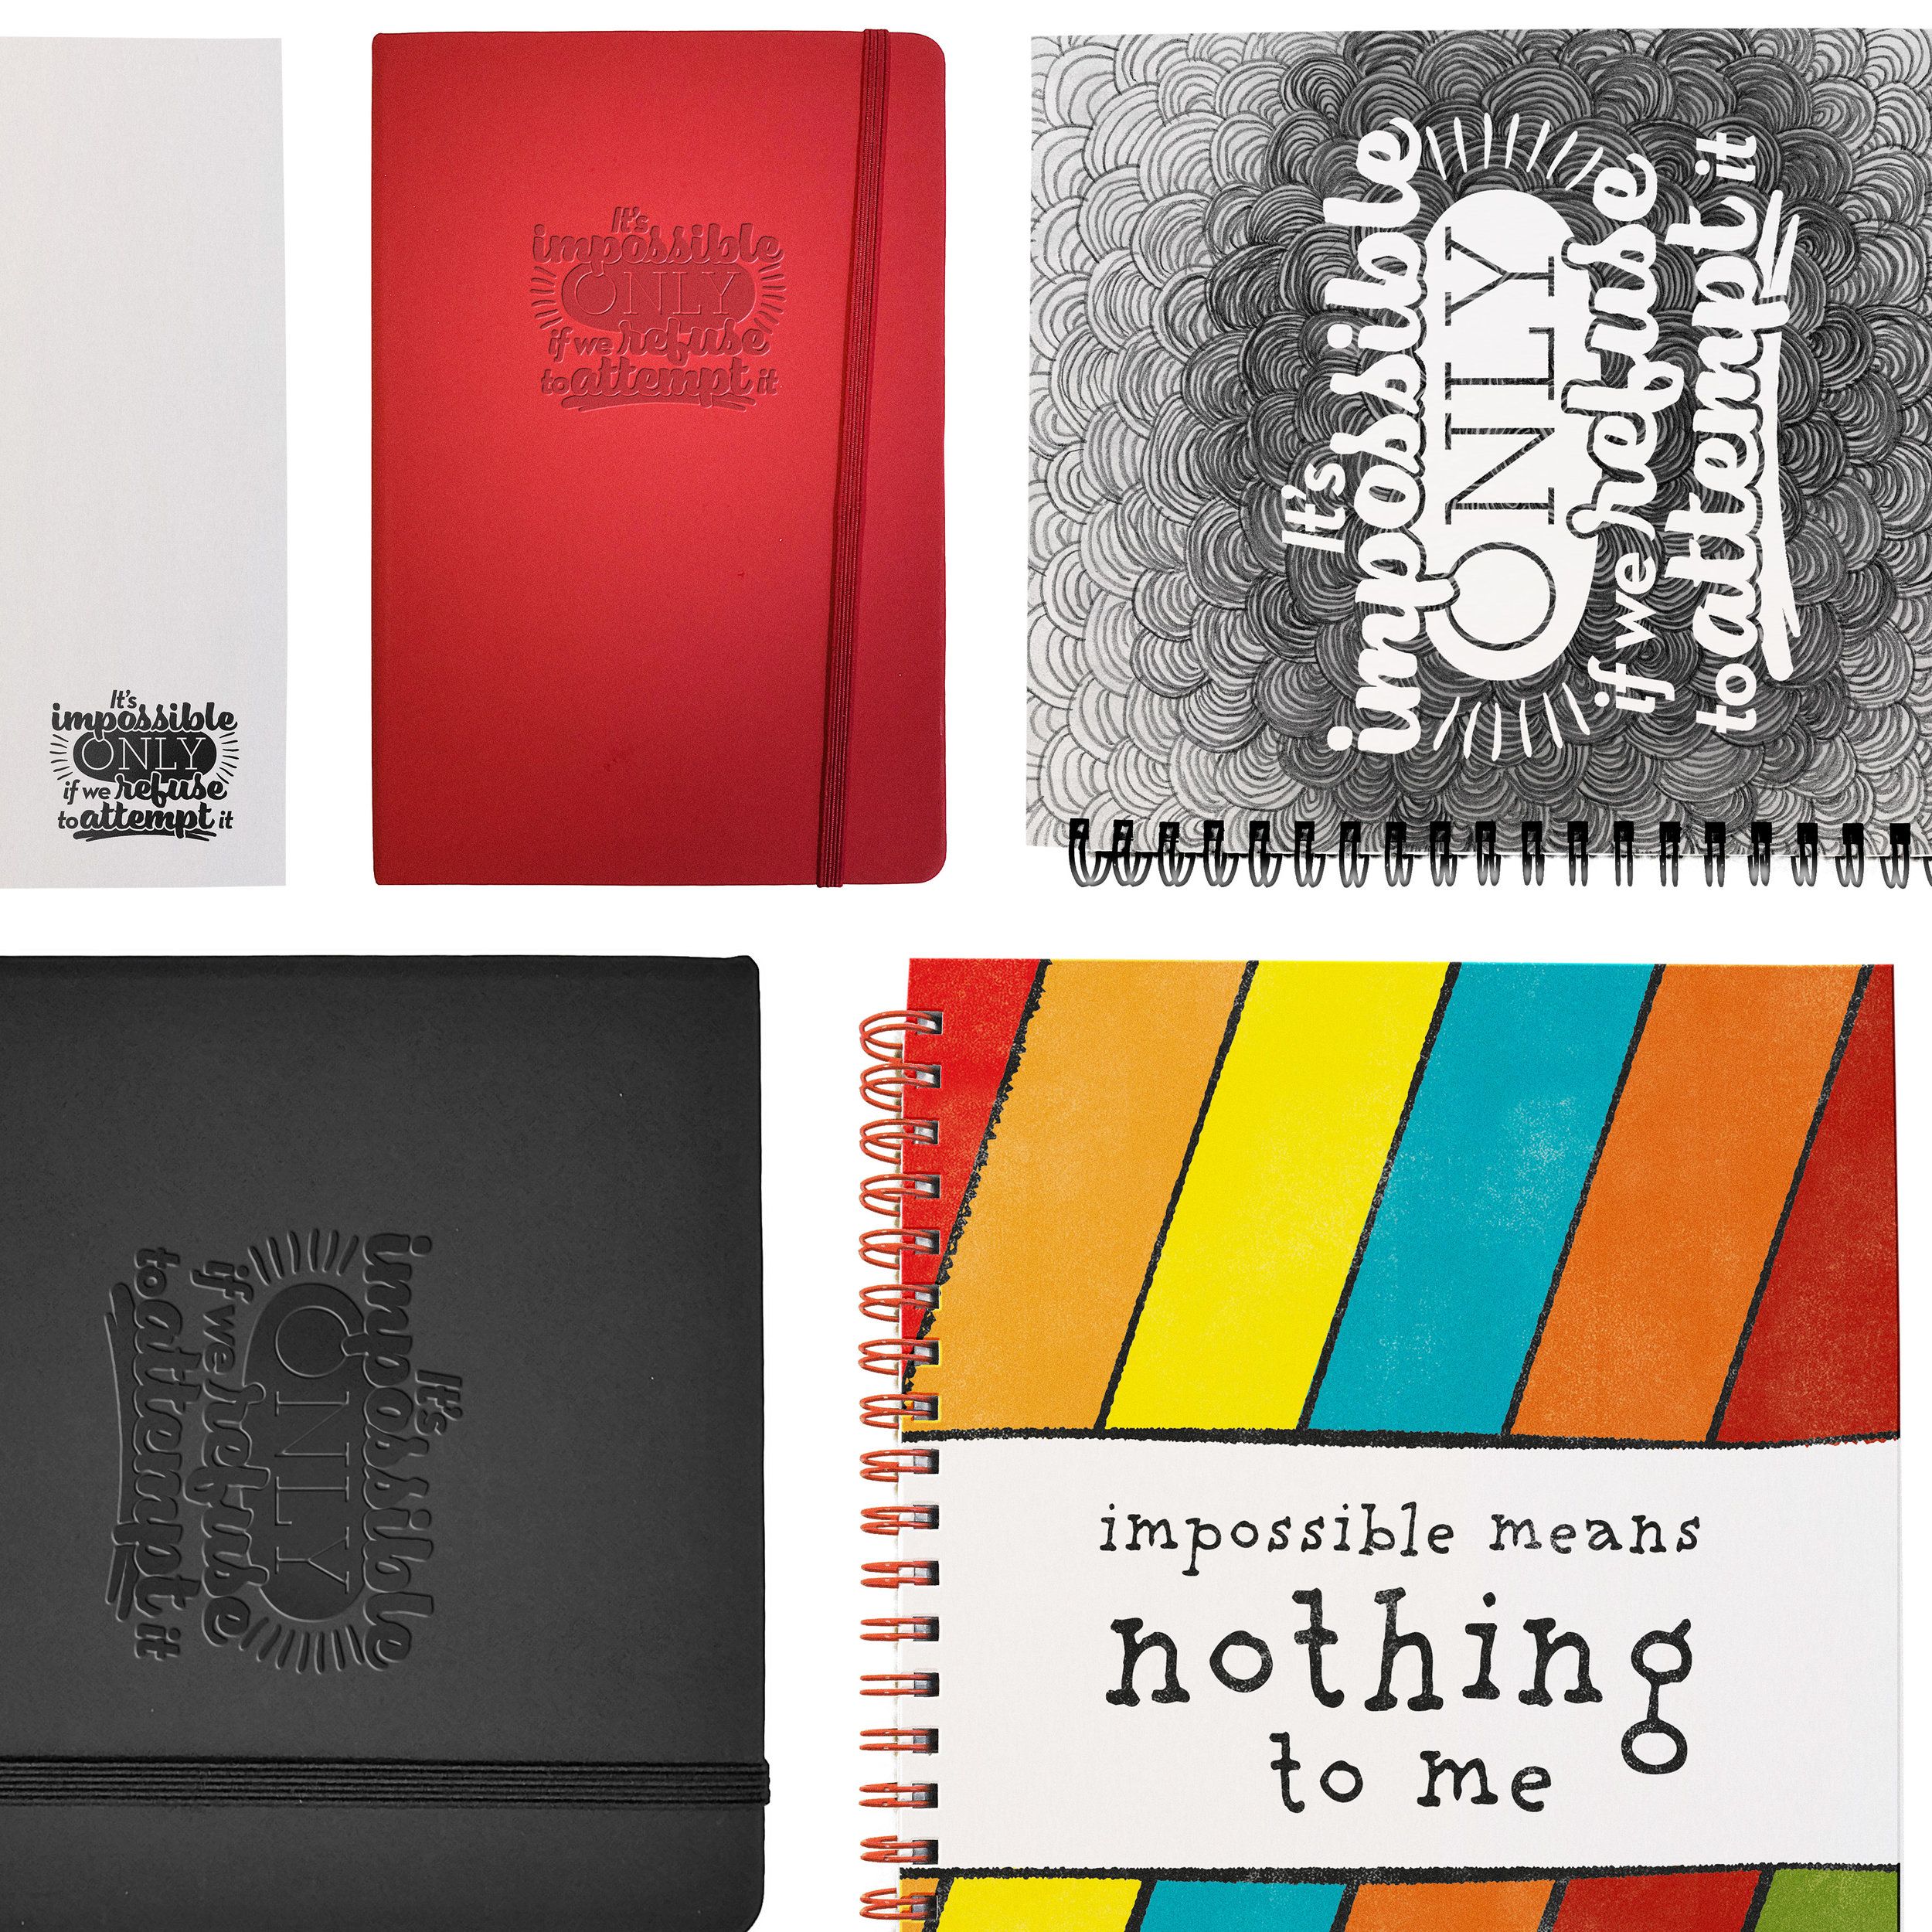 Save the Children Good Goods notebook designs by Steve McInerny